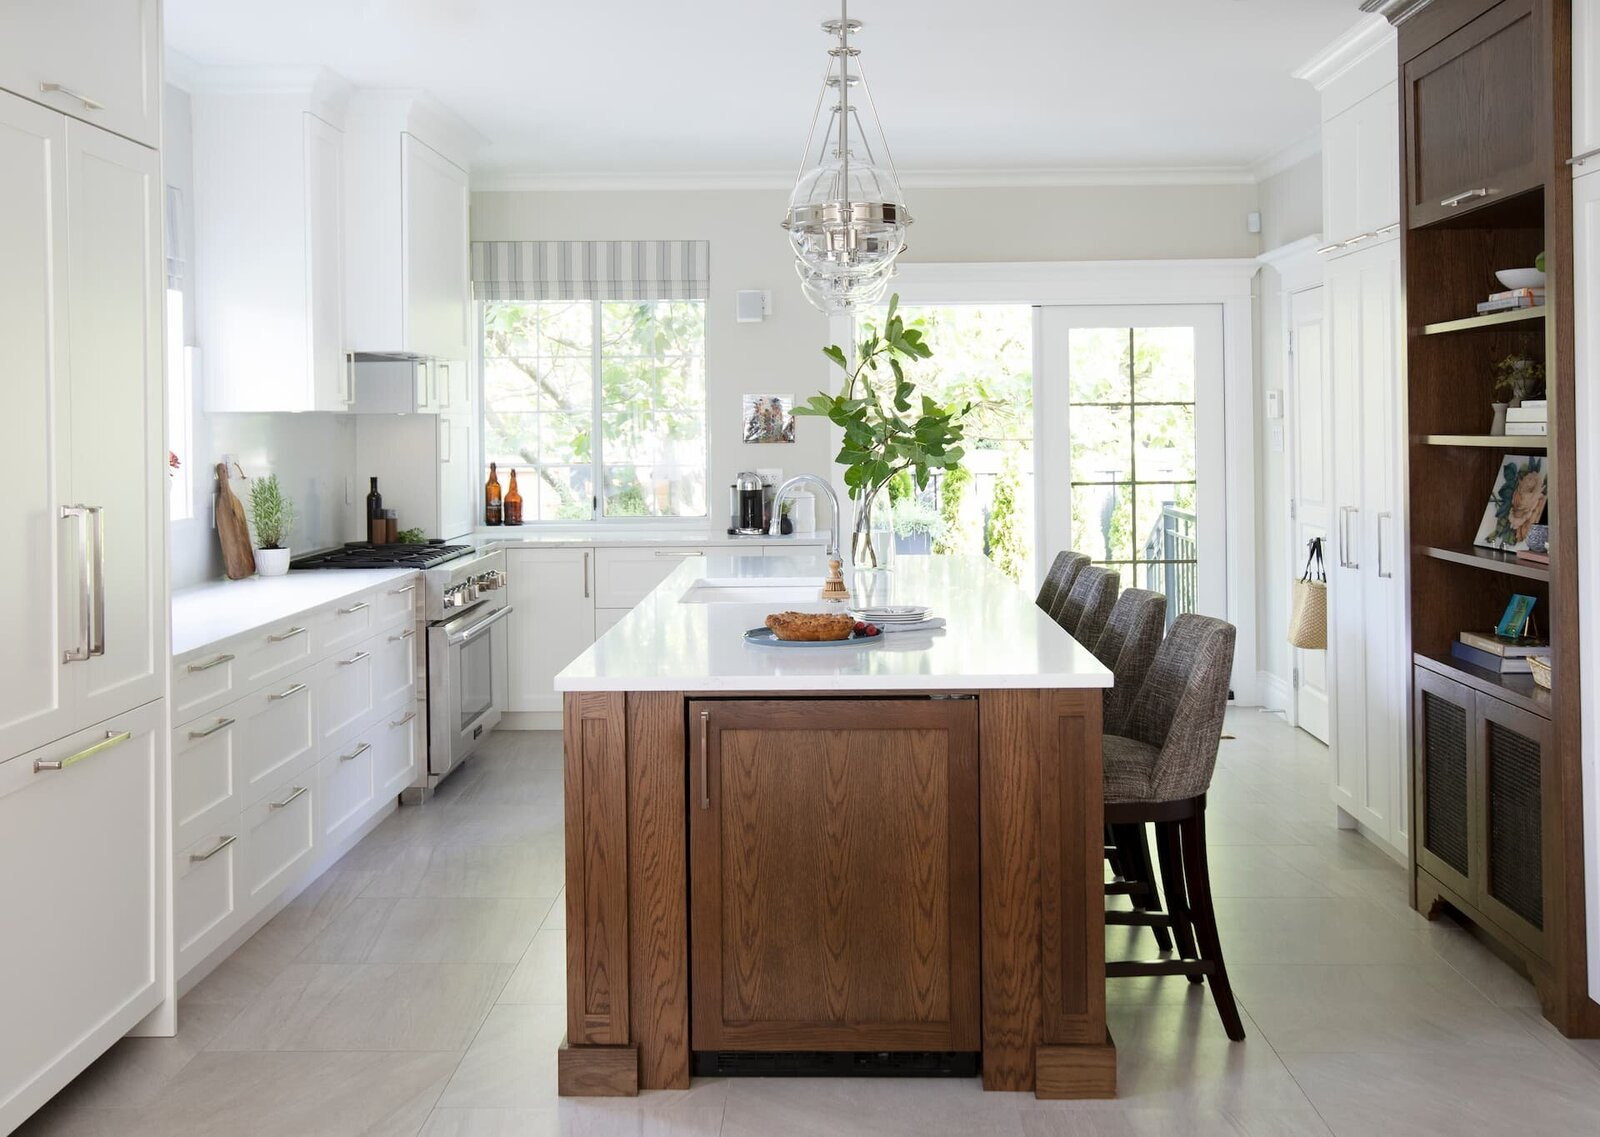 Granville Street l Kitchen l White Shaker Cabinet with Wood Island and Globe_Chrome Pendants